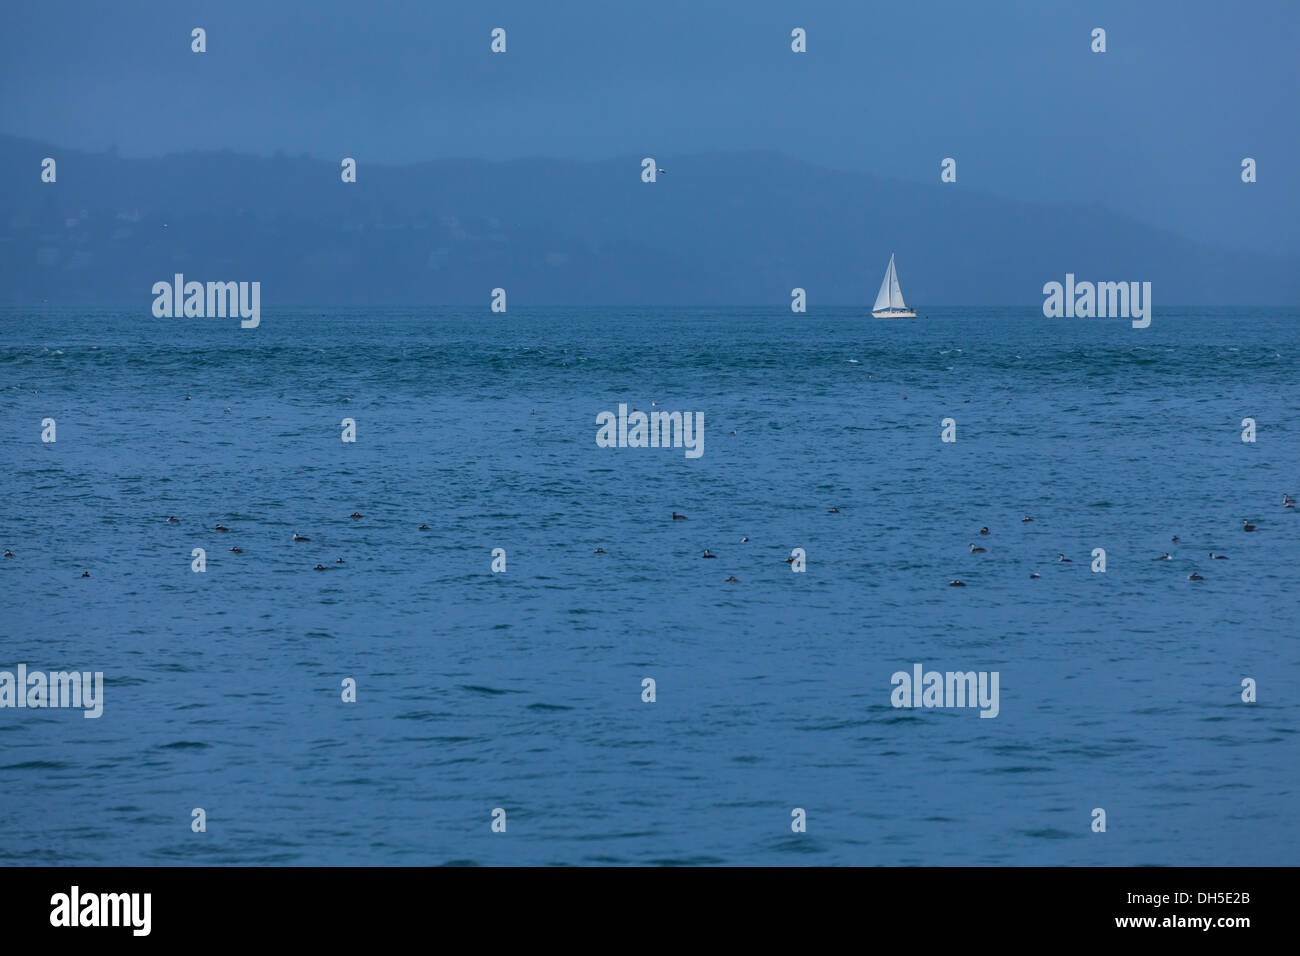 Single sail boat on open water - Stock Image